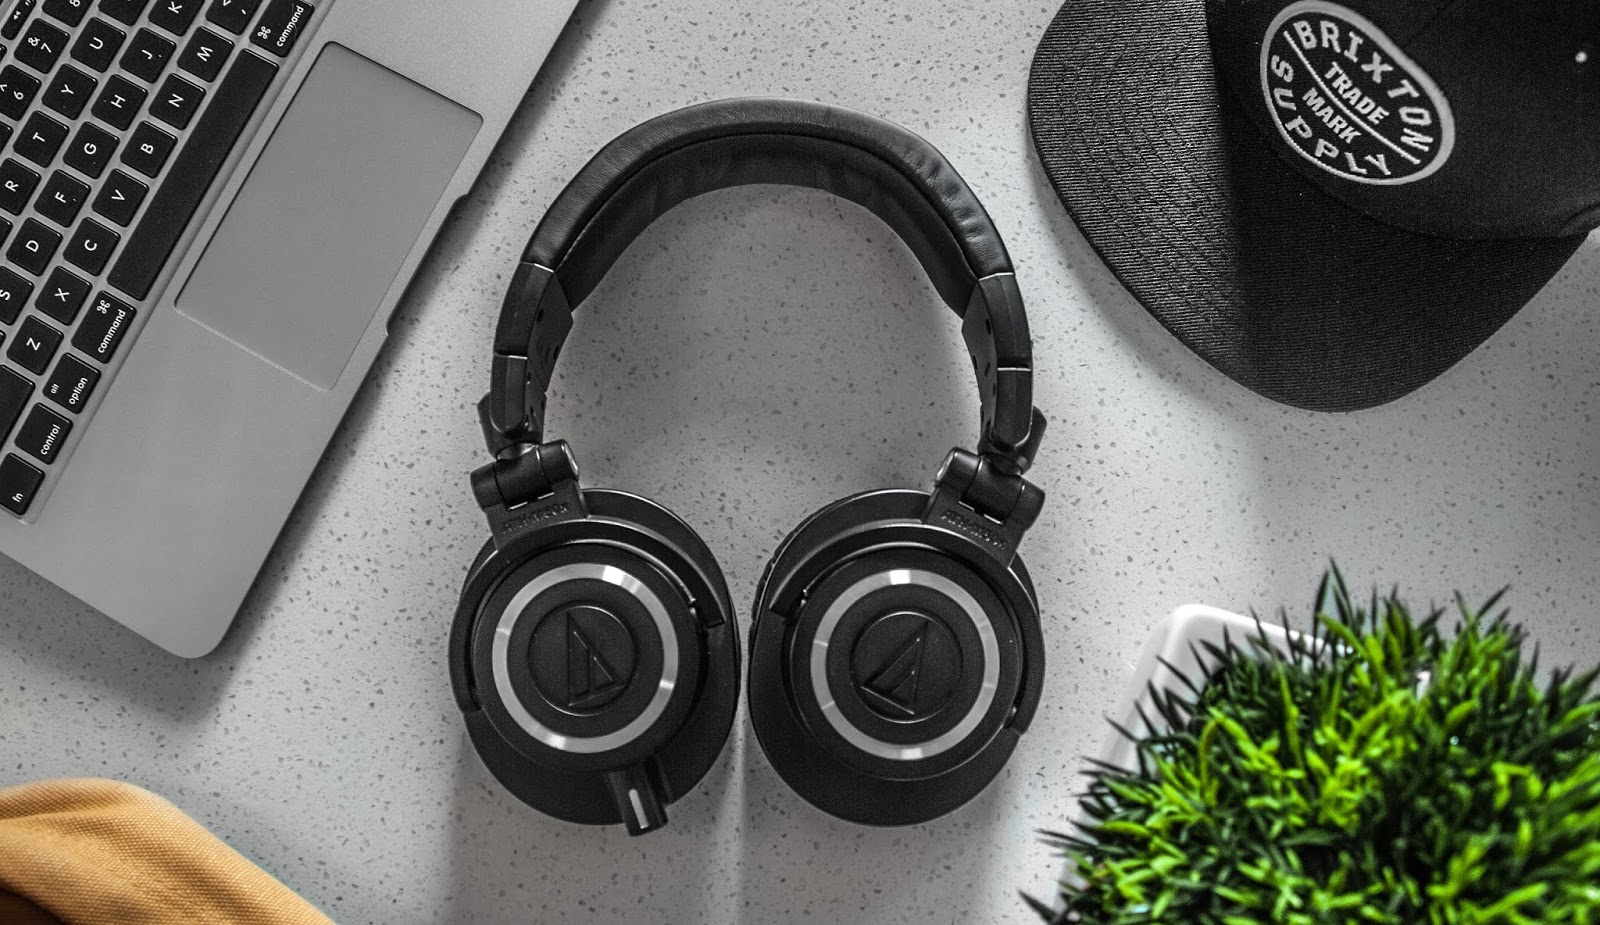 Top 10 Best Headphone With Mic Under Rs 1,000 in India (2019)